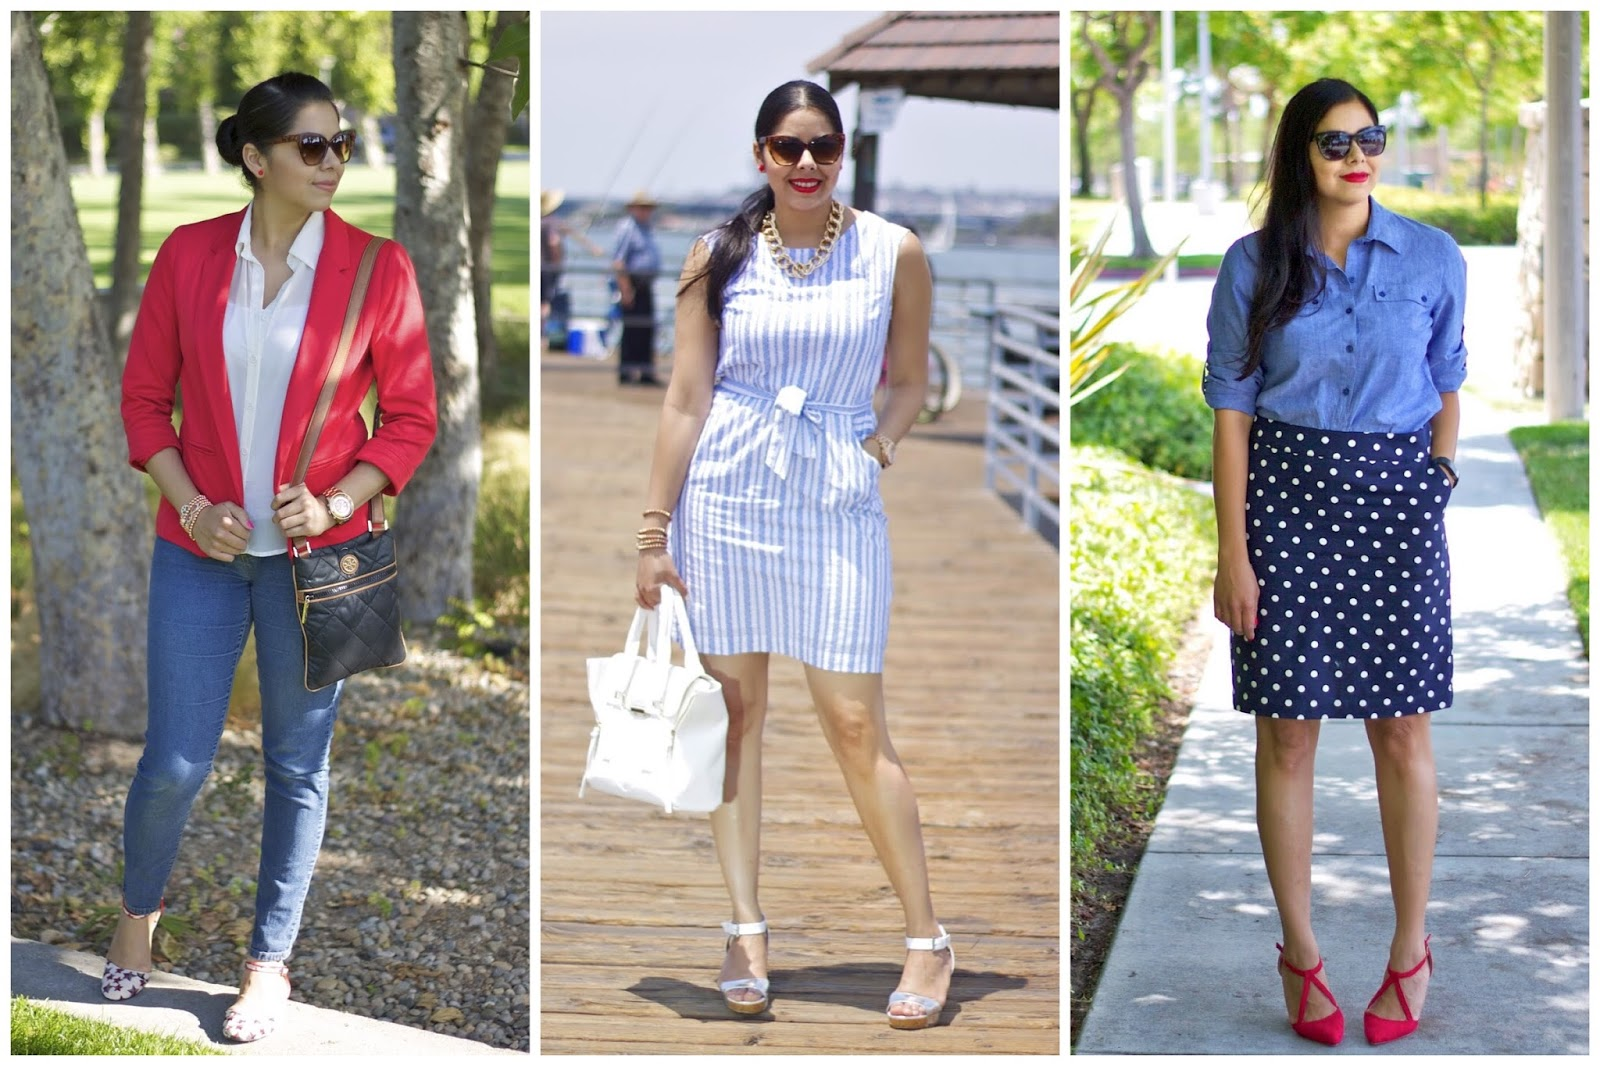 fourth of july outfit ideas, red white and blue outfits, chic red white and blue outfits